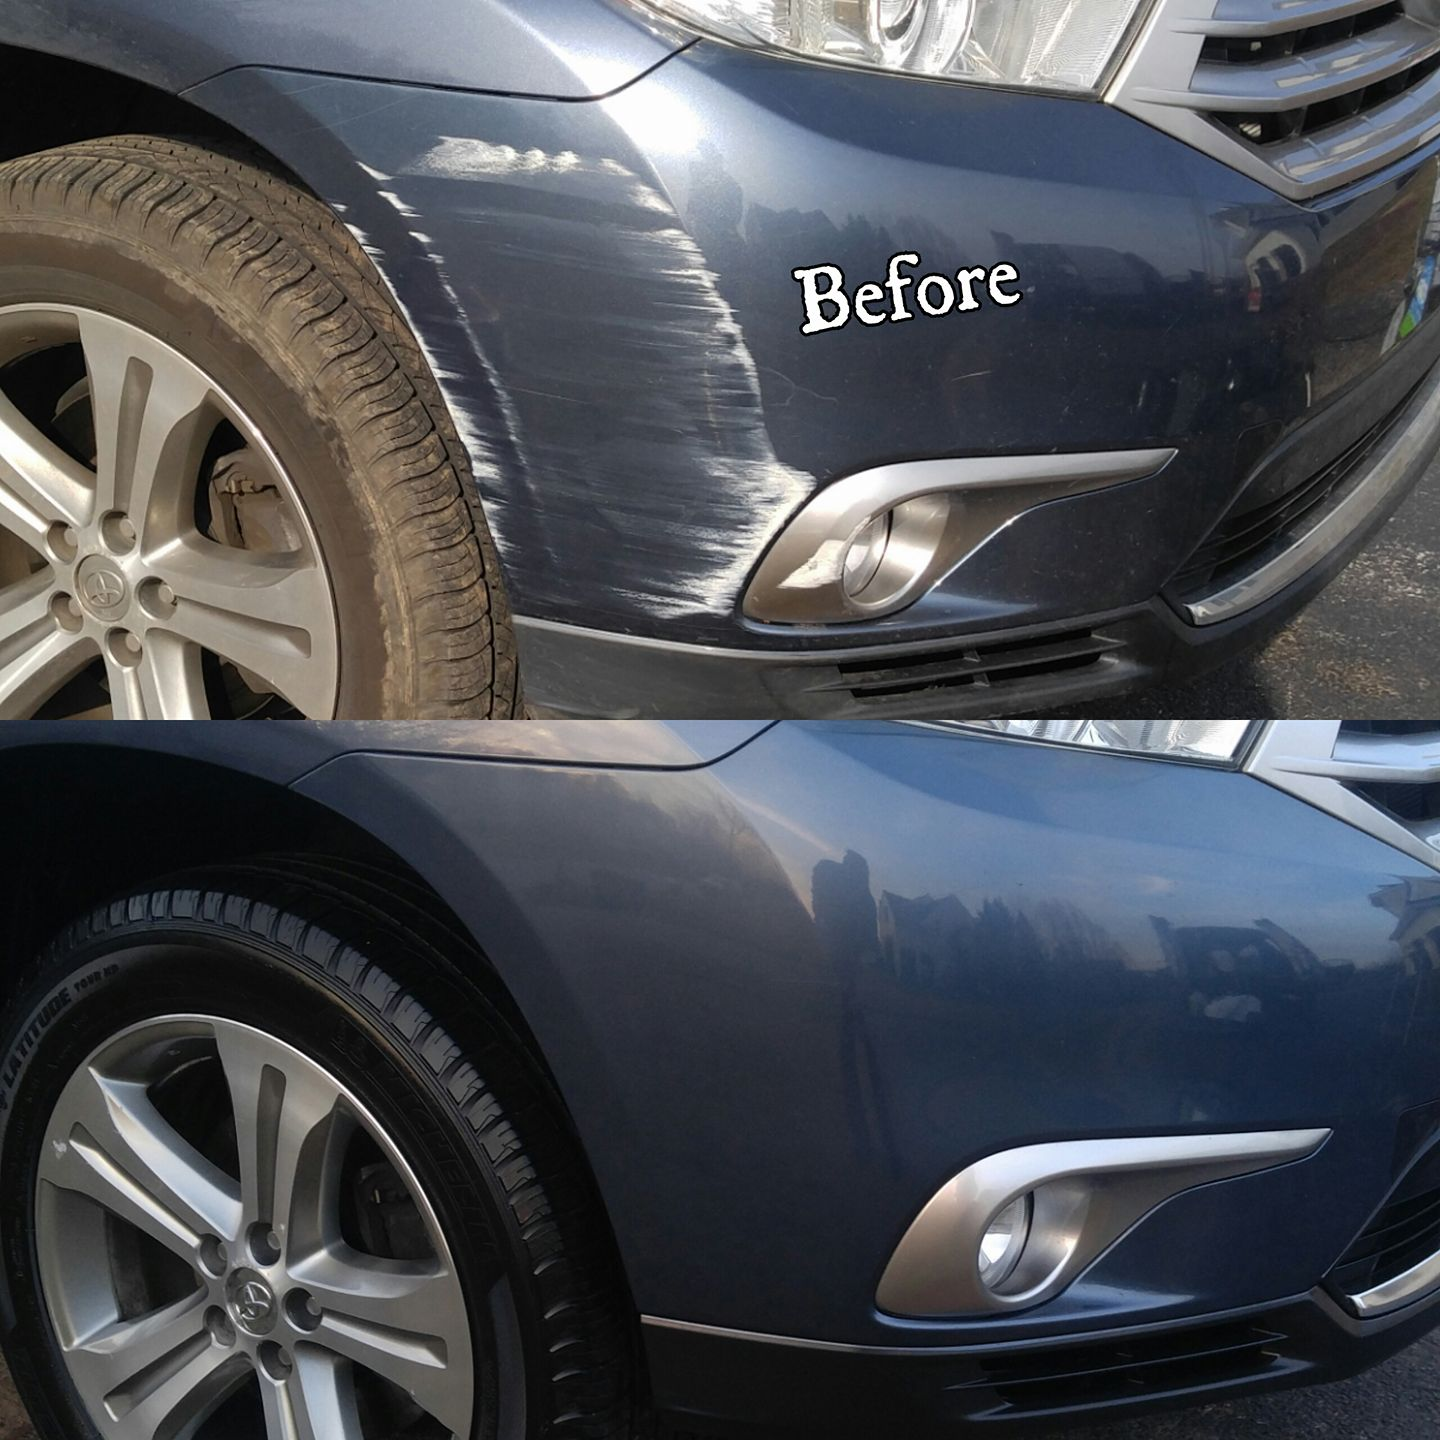 Fixing-a-Car-Scratch-Which-Products-Work-Best-1